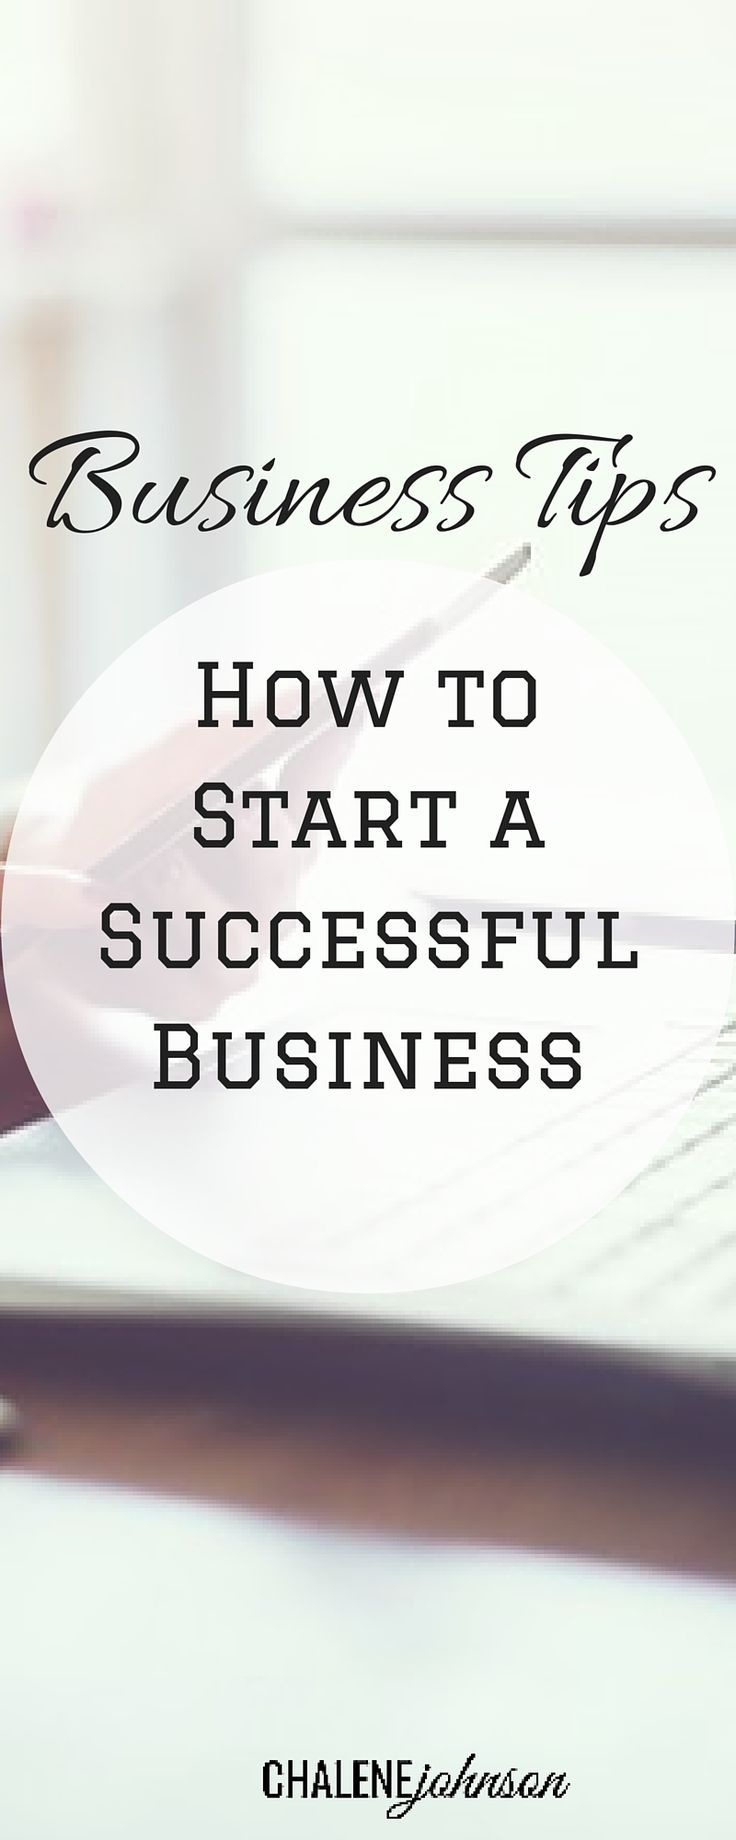 Business Tips How to Start a Successful Business